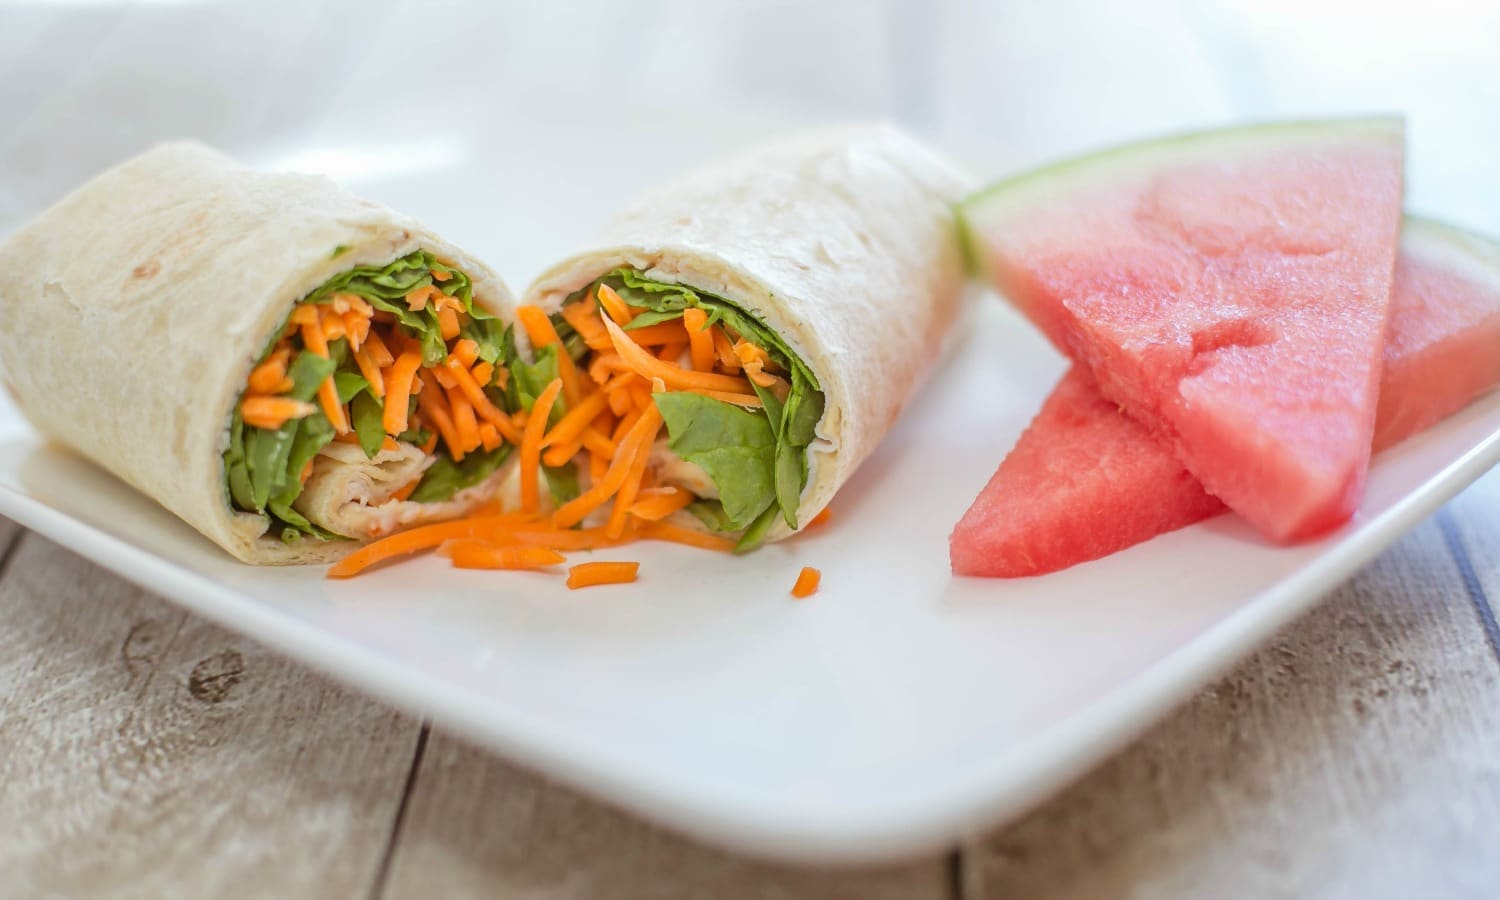 These make-ahead wraps are delicious for lunches all week long. Pair with a piece of fruit and enjoy!